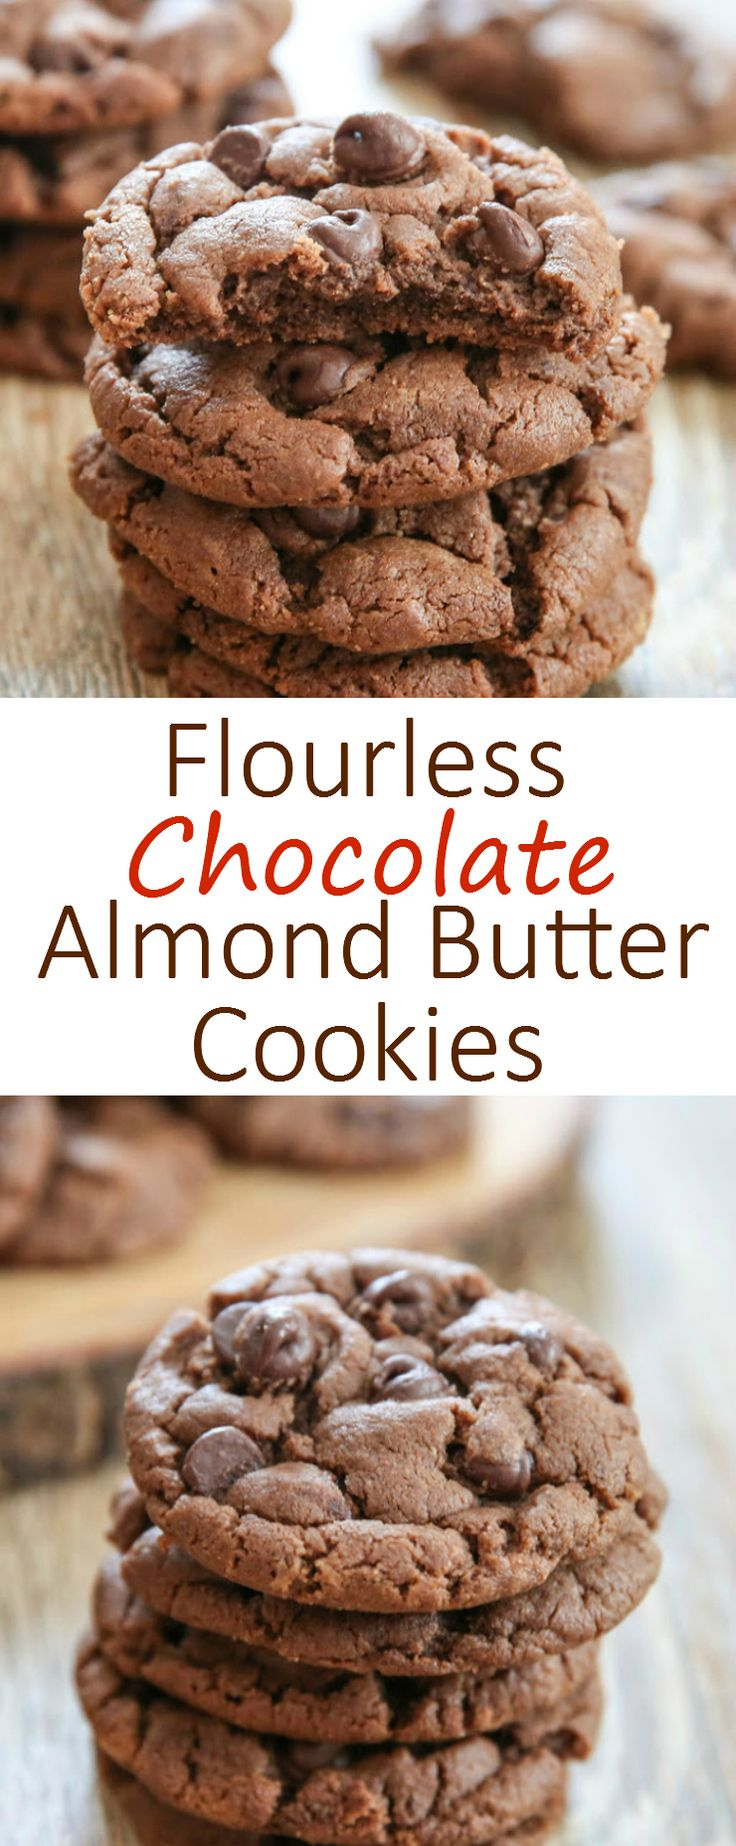 Flourless Chocolate Almond Butter Cookies. One bowl, no mixer needed!